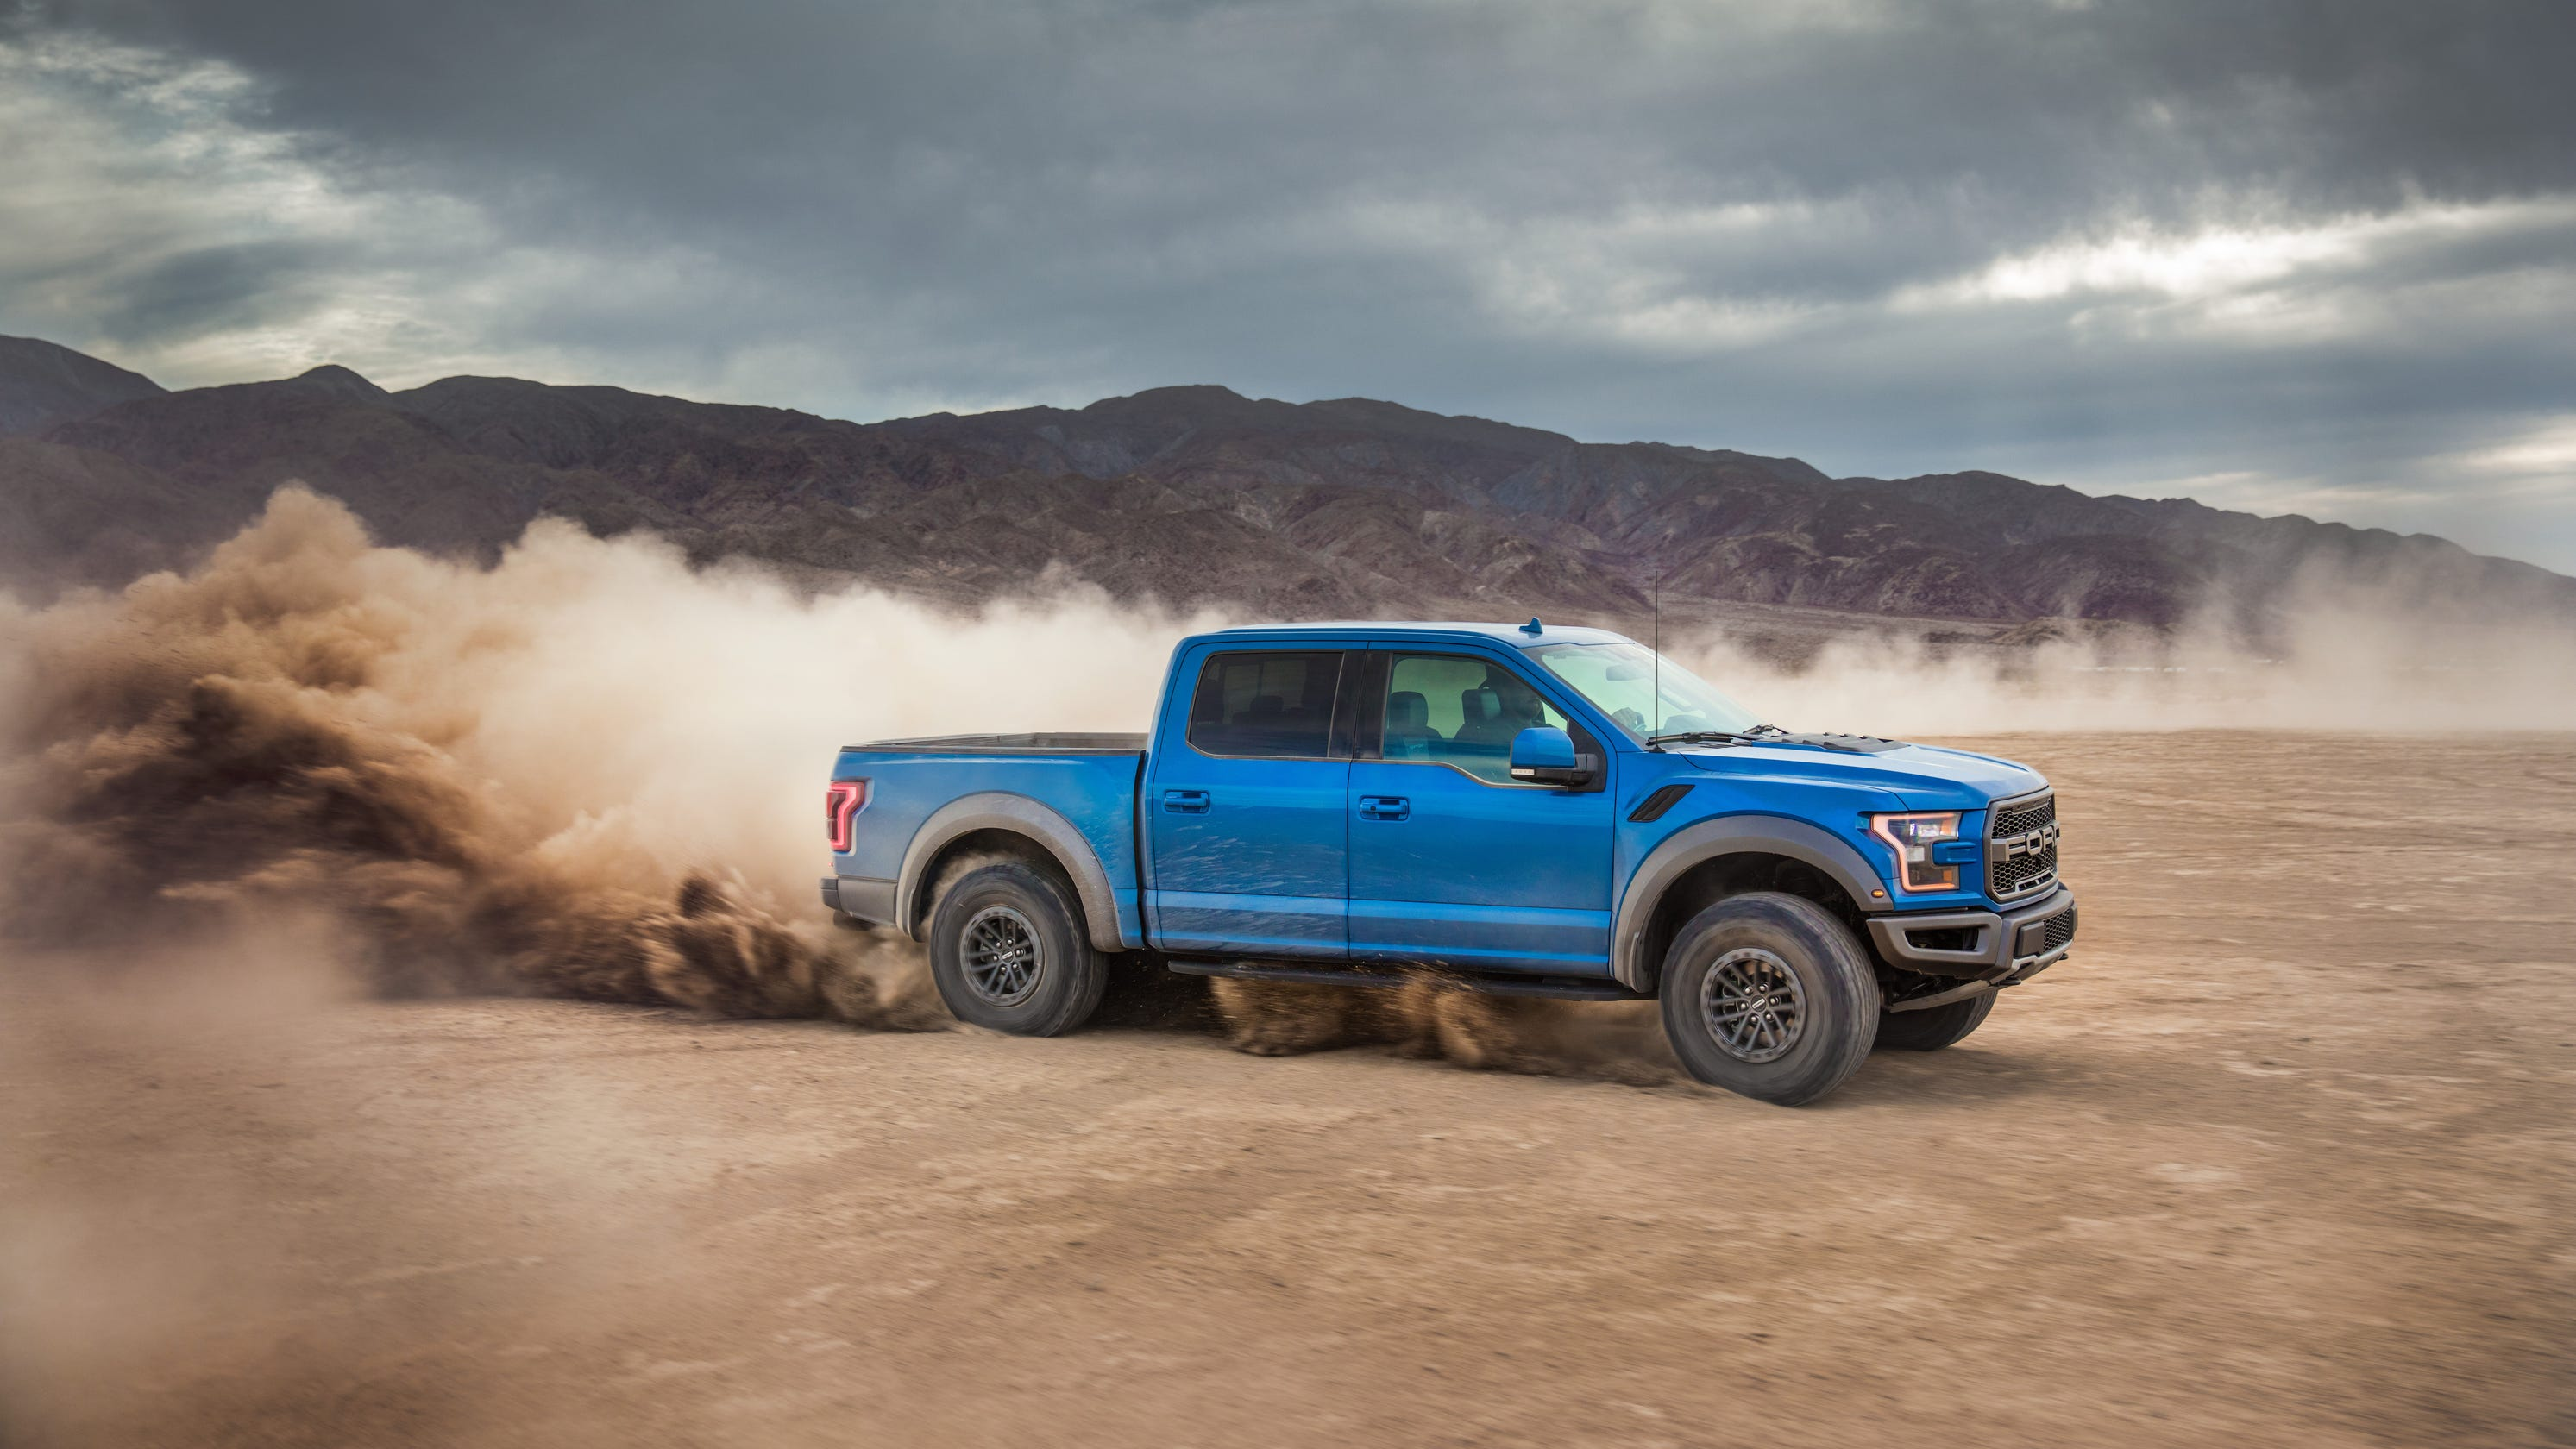 Ford F-150, Ram 1500, Toyota Tundra could be disrupted by tornado